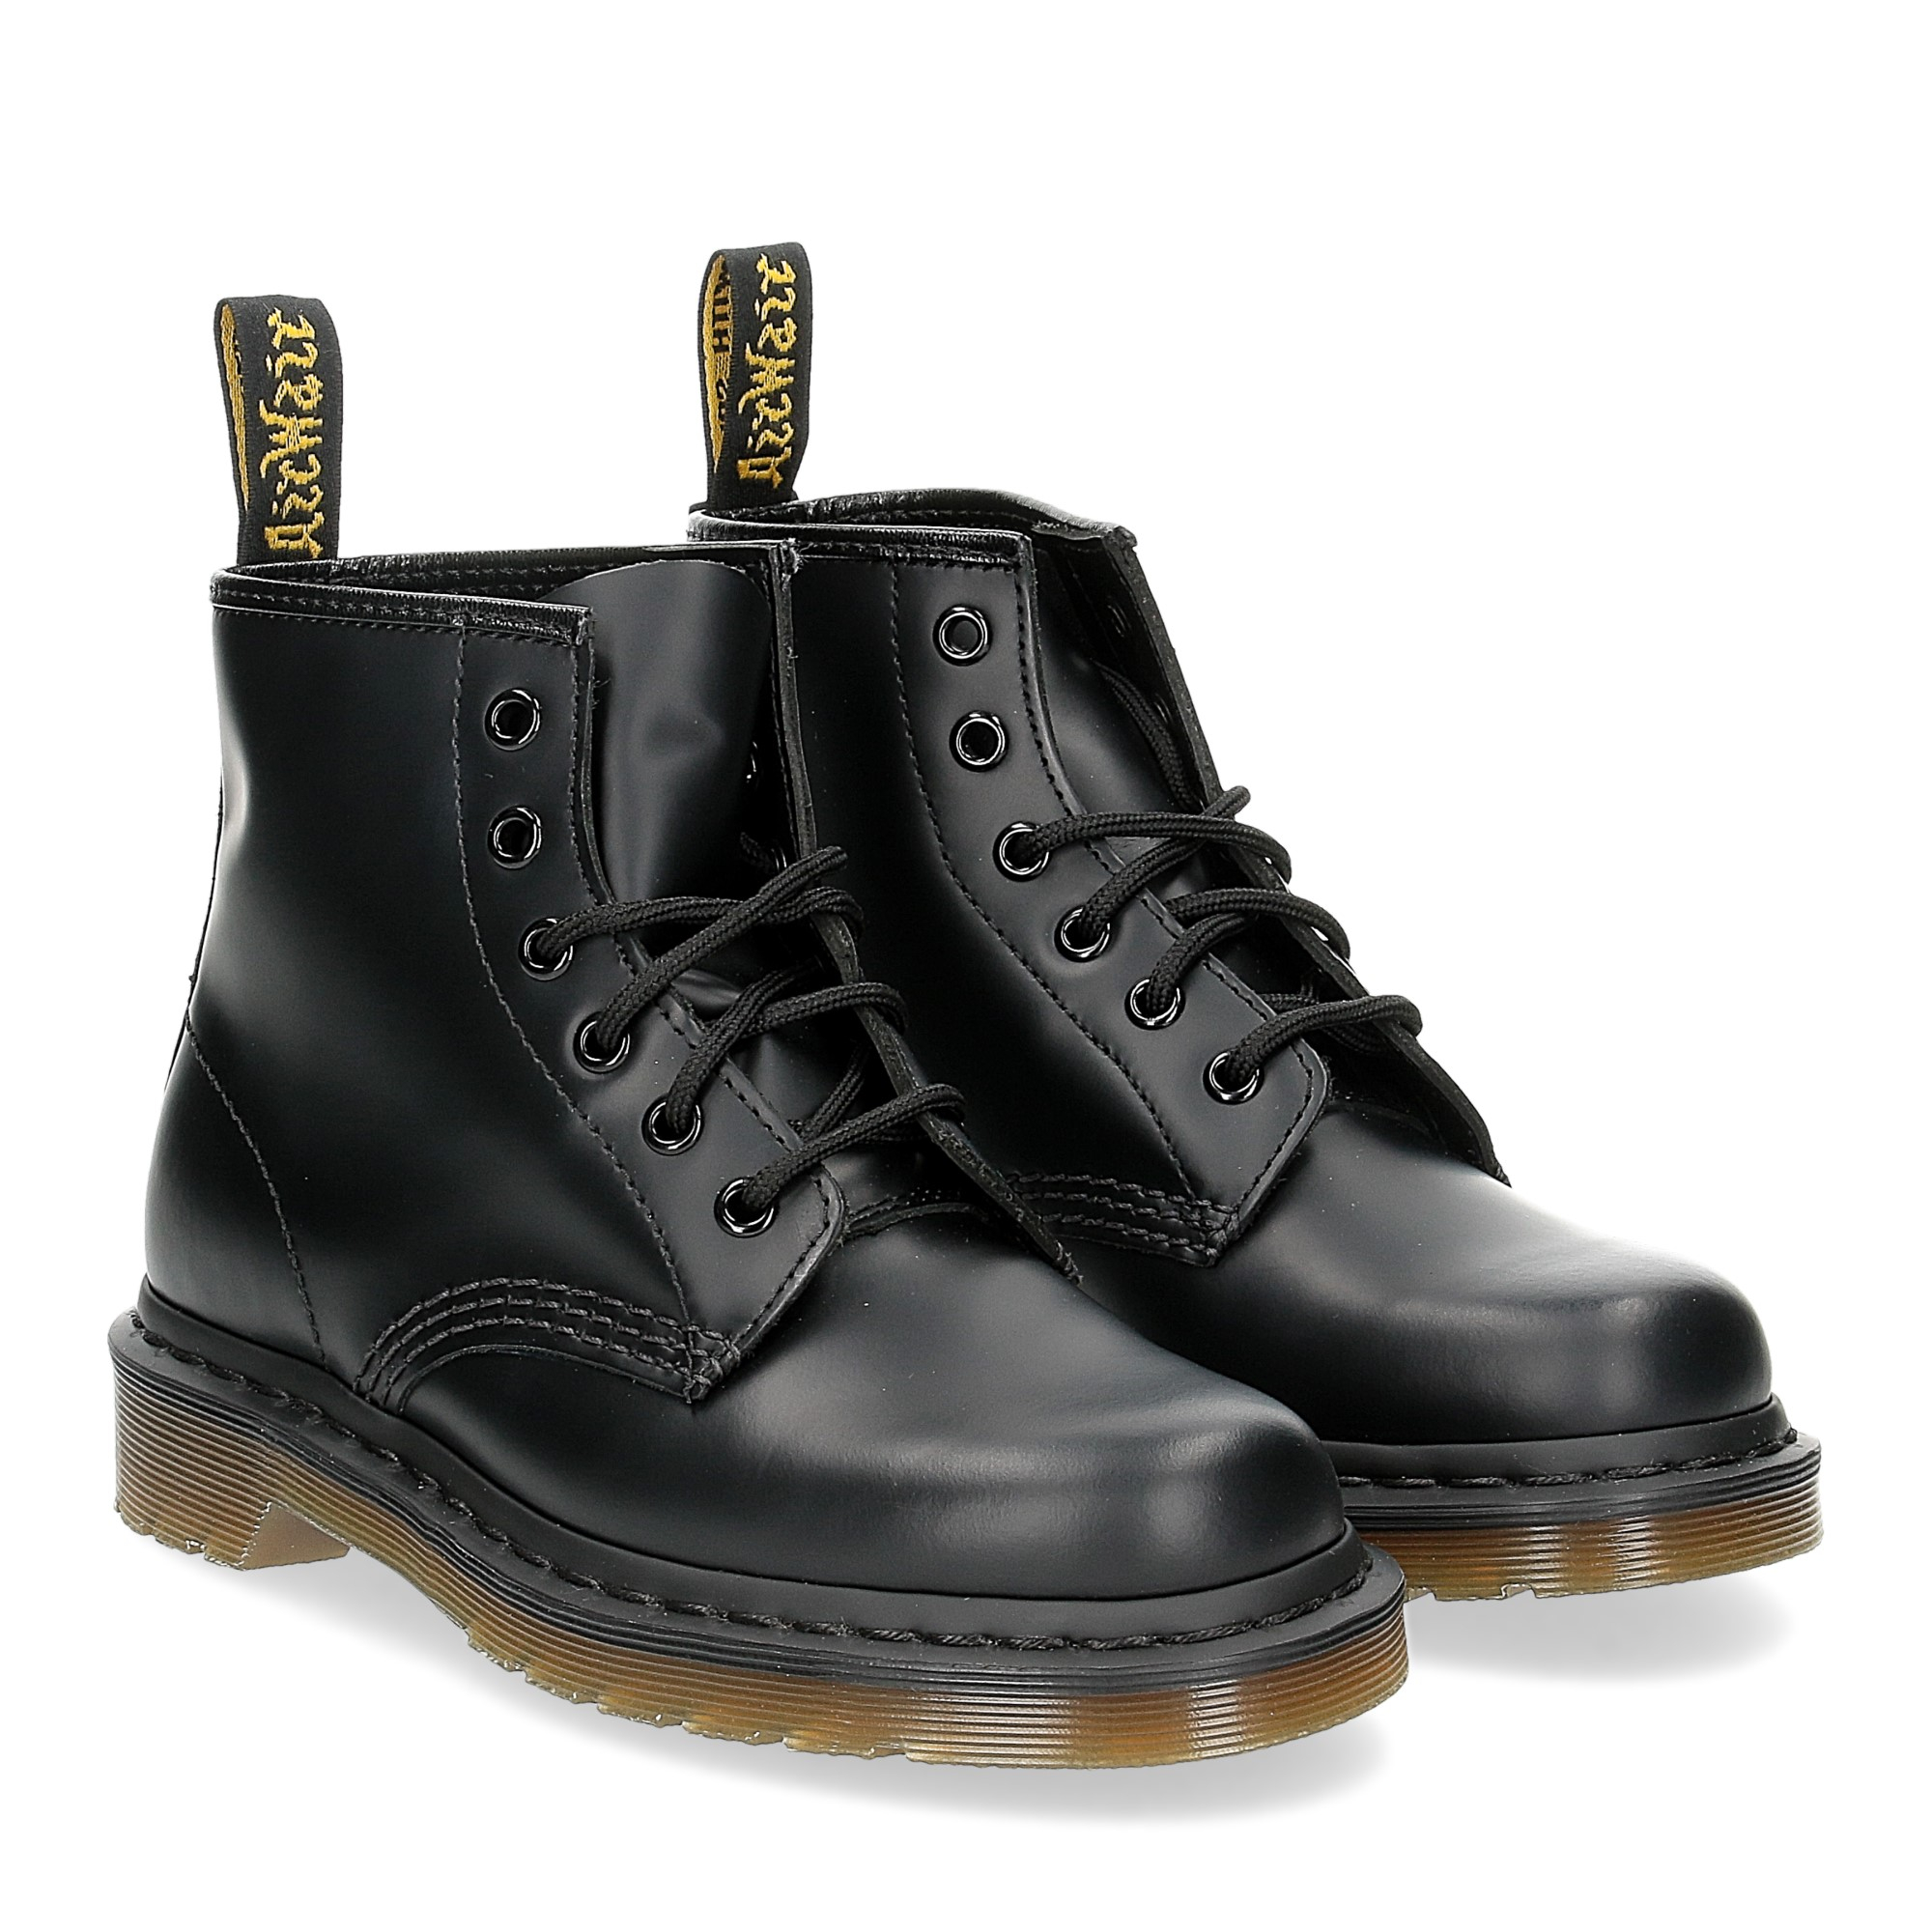 Dr. martens 101 black smooth